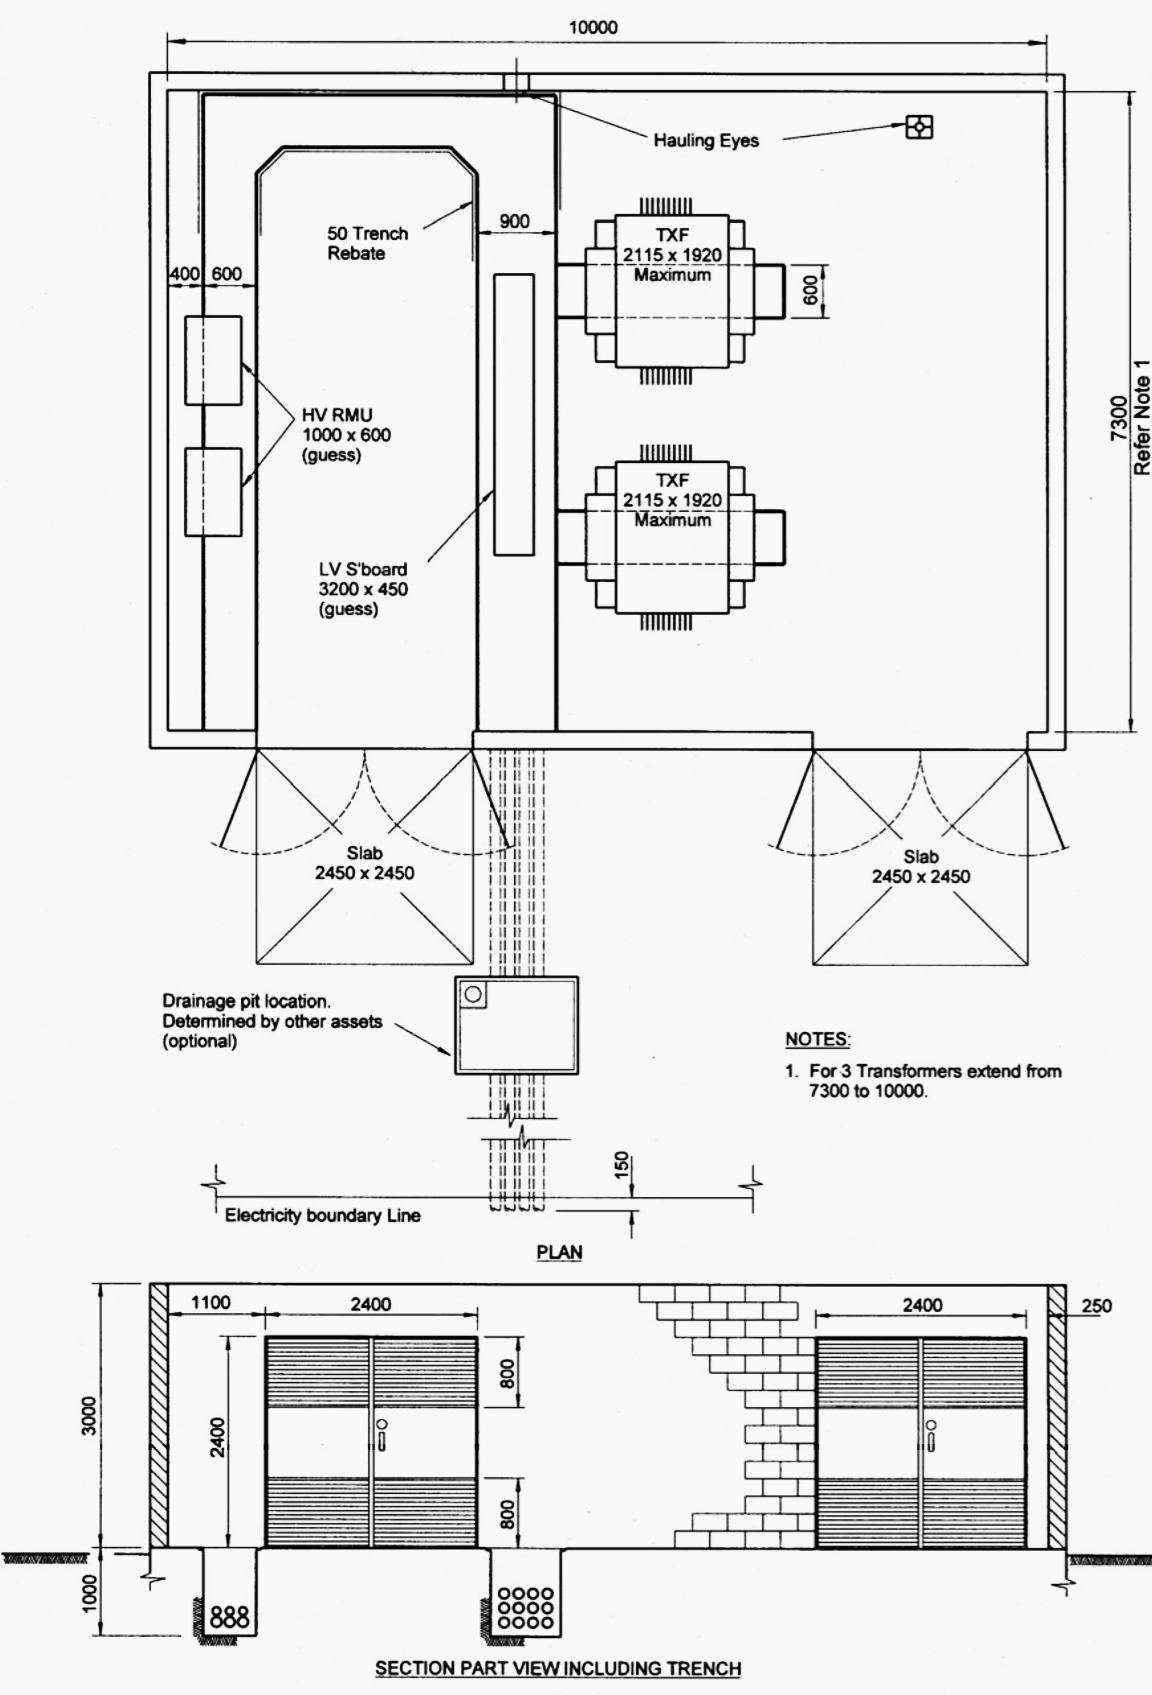 99a70bb358416076e5e32ffc7f5bacc9 indoor distribution substation layout with 2 transformers emf substation wiring diagrams at fashall.co